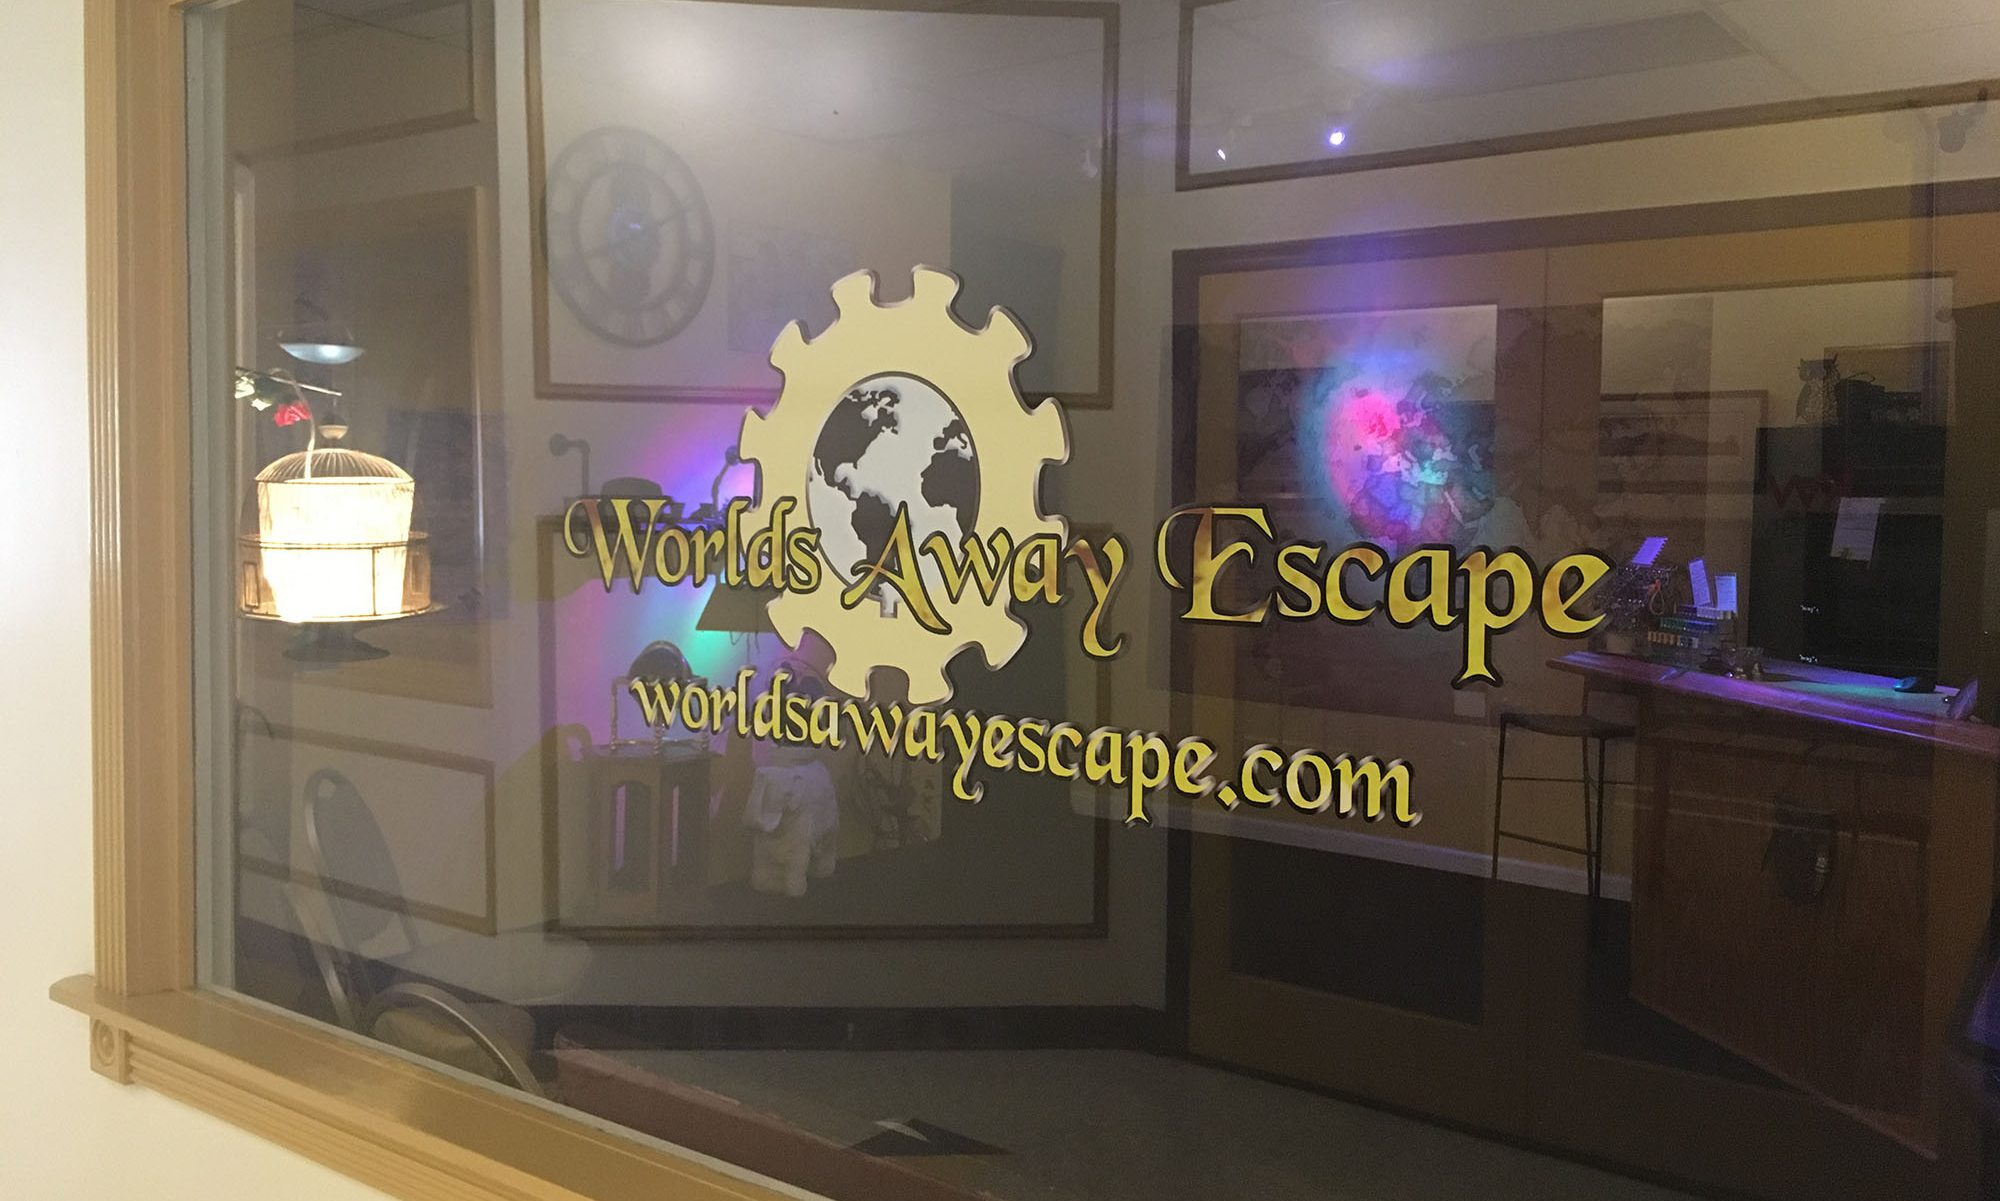 Worlds Away Escape